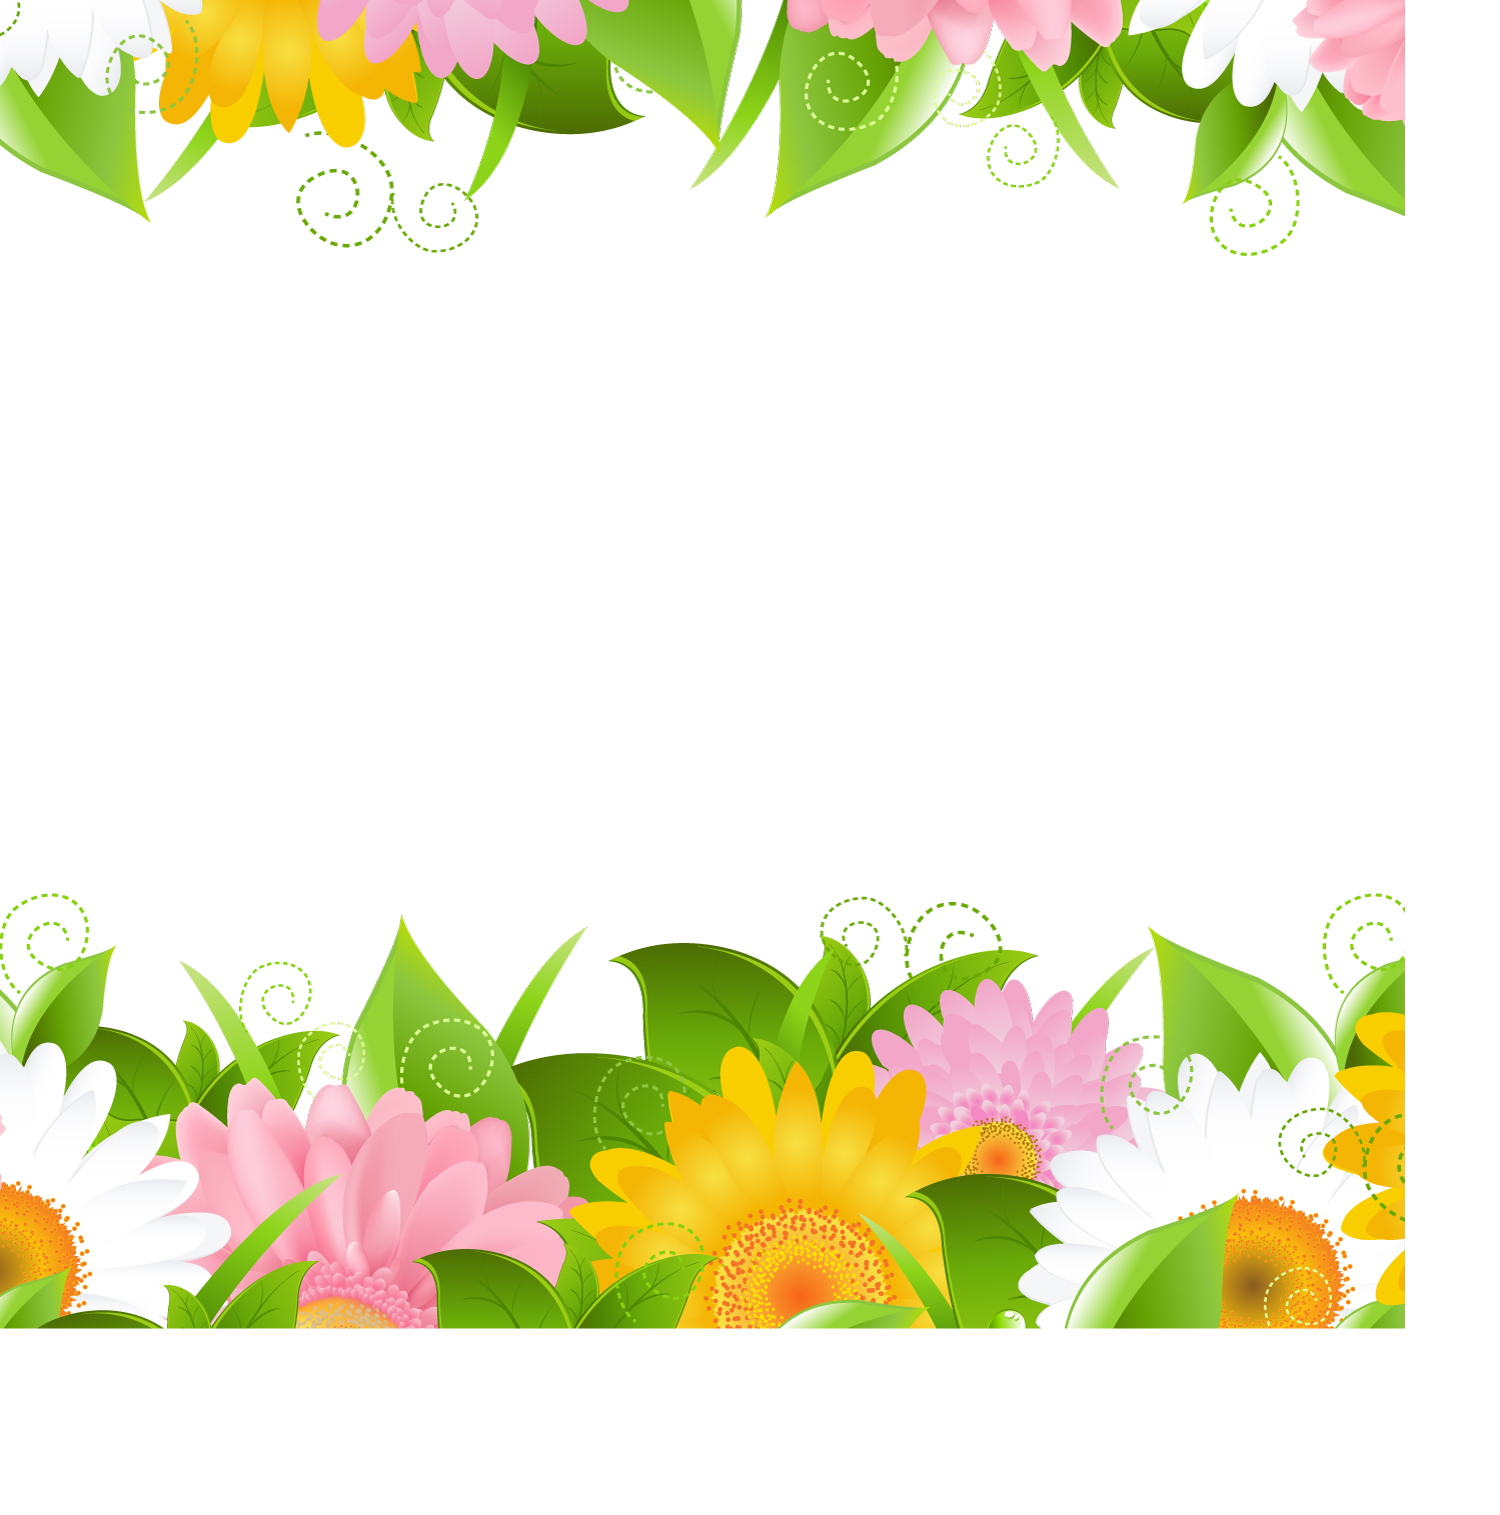 Free background pictures of flowers graphic library stock Flowers petals lace background 02 vector Free Vector / 4Vector graphic library stock